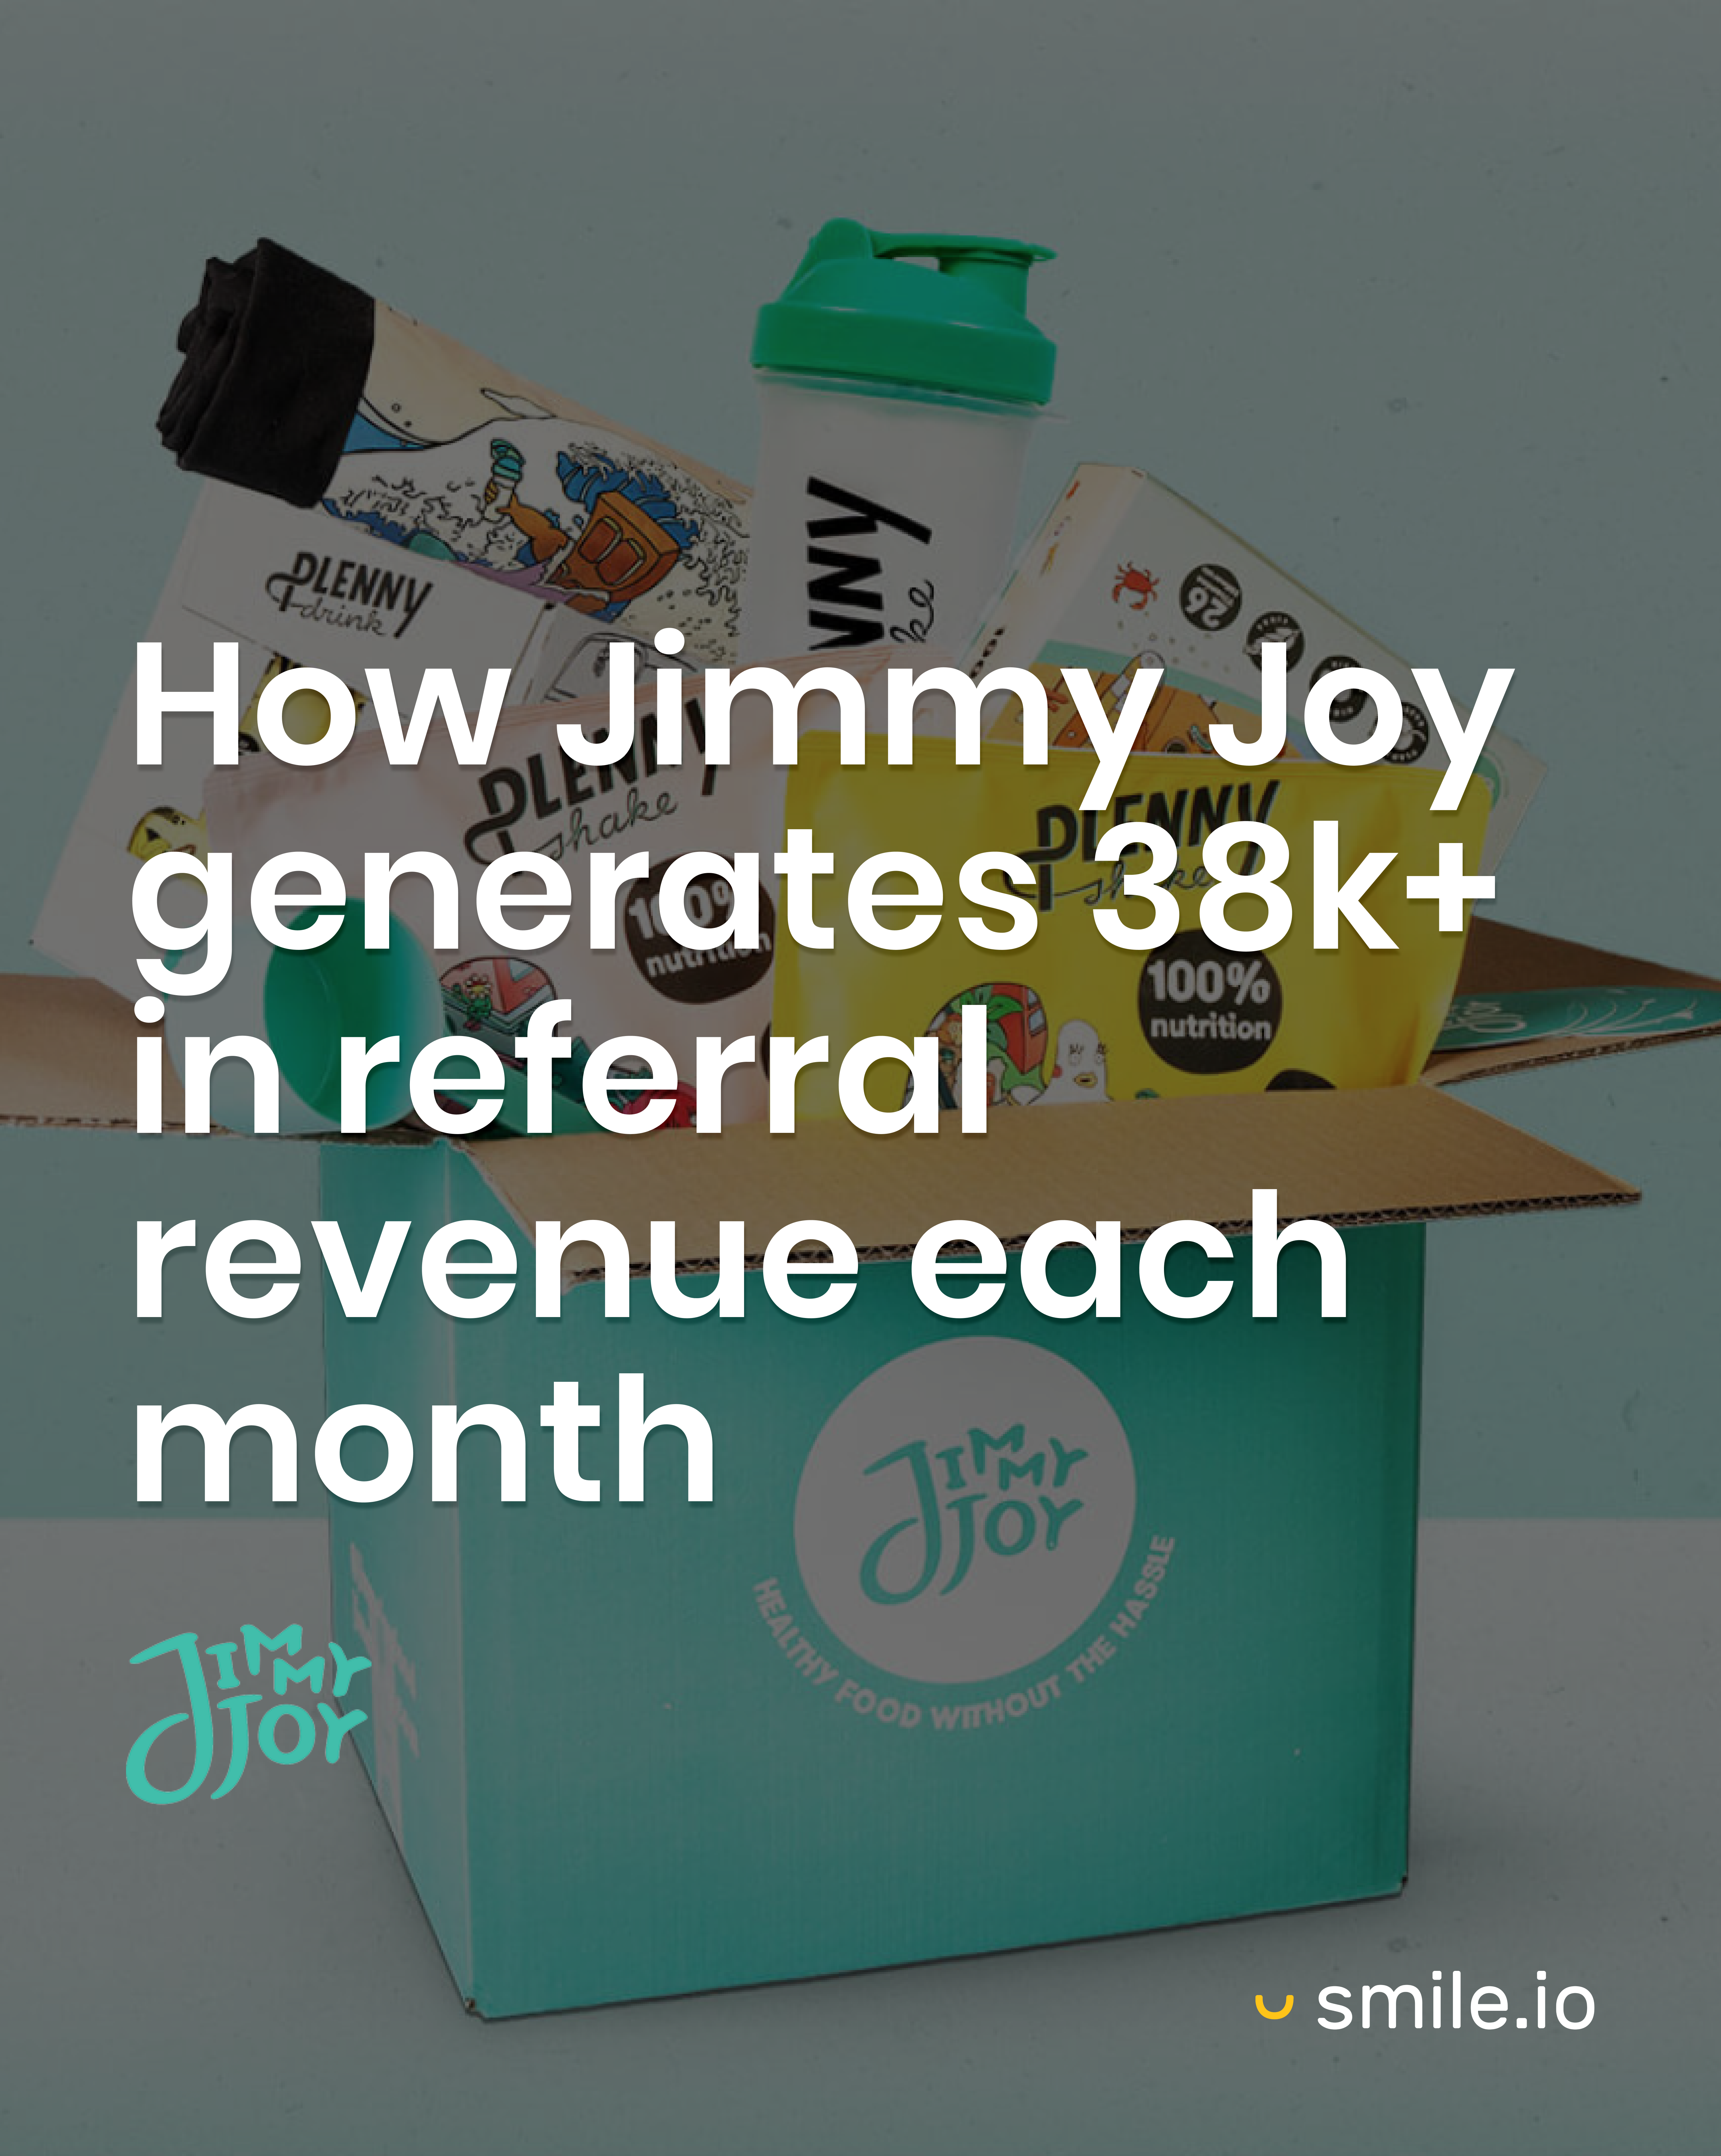 How Jimmy Joy generates 38k+ in referral revenue each month